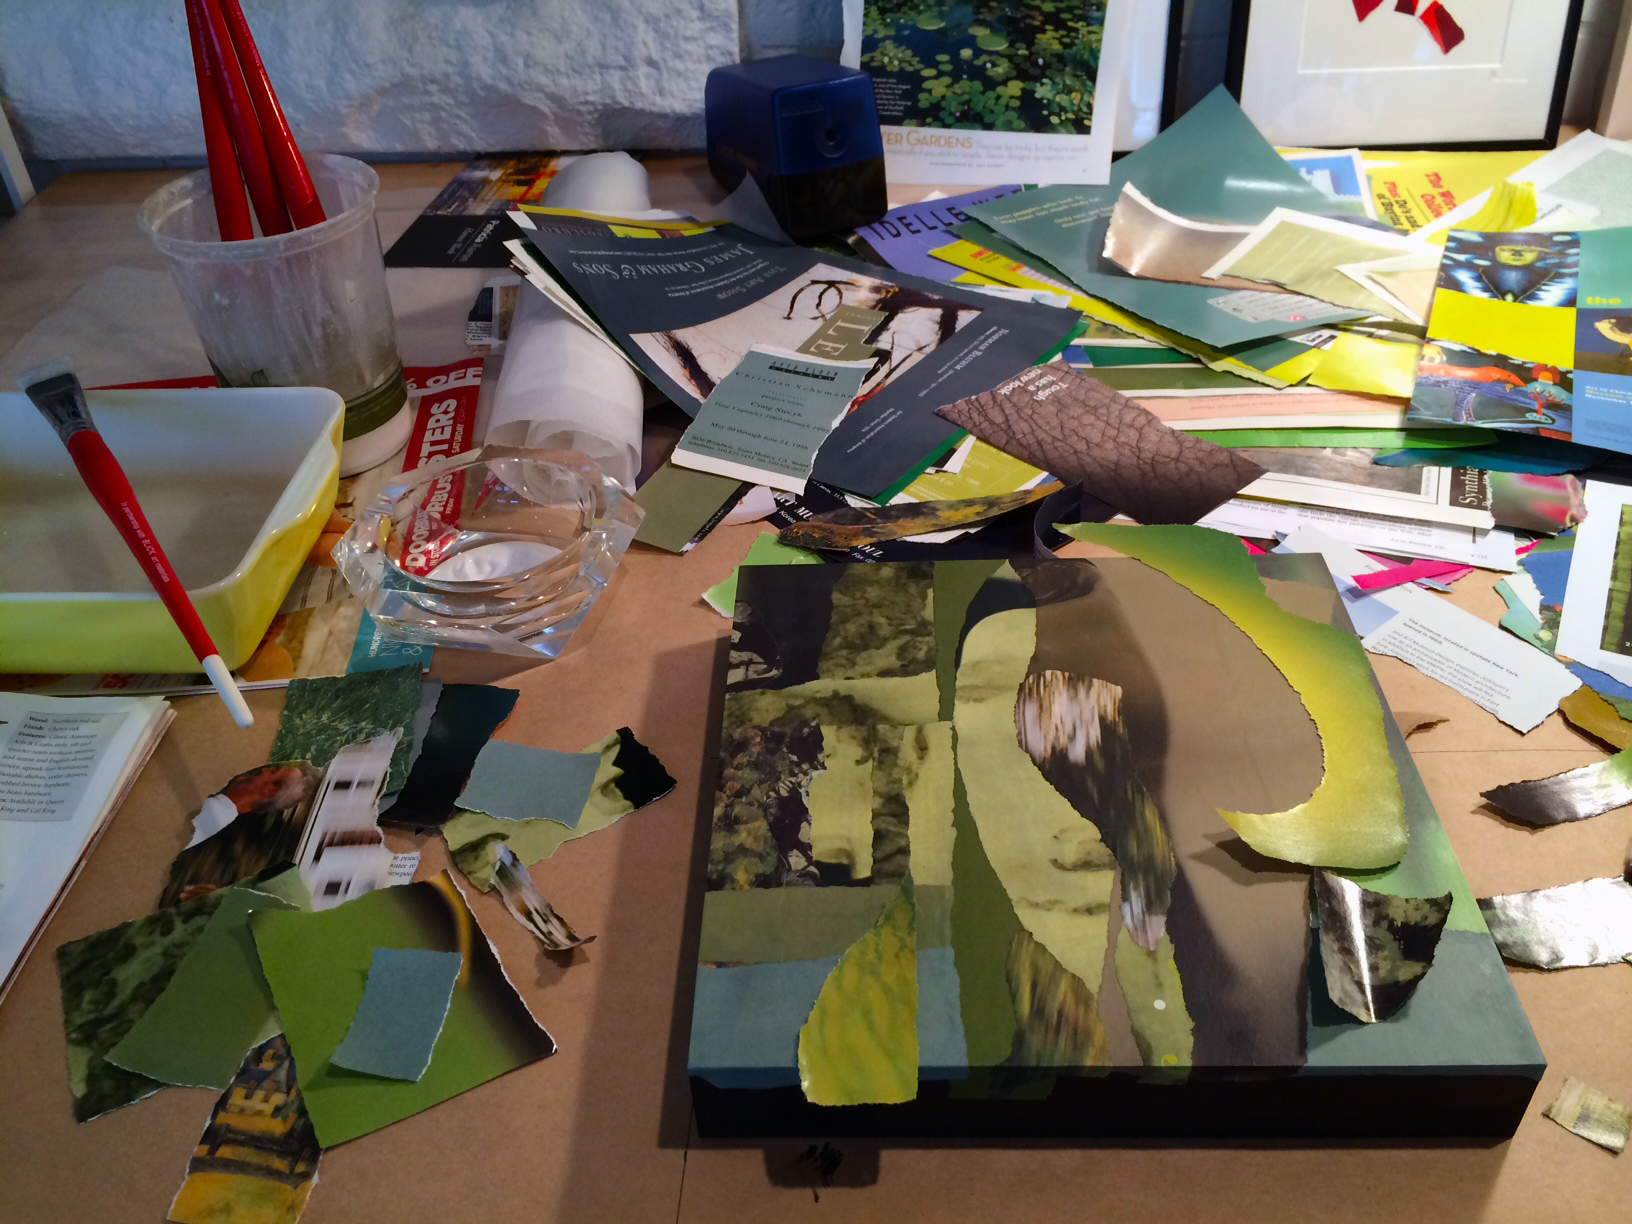 View of my work surface with collage in progress.